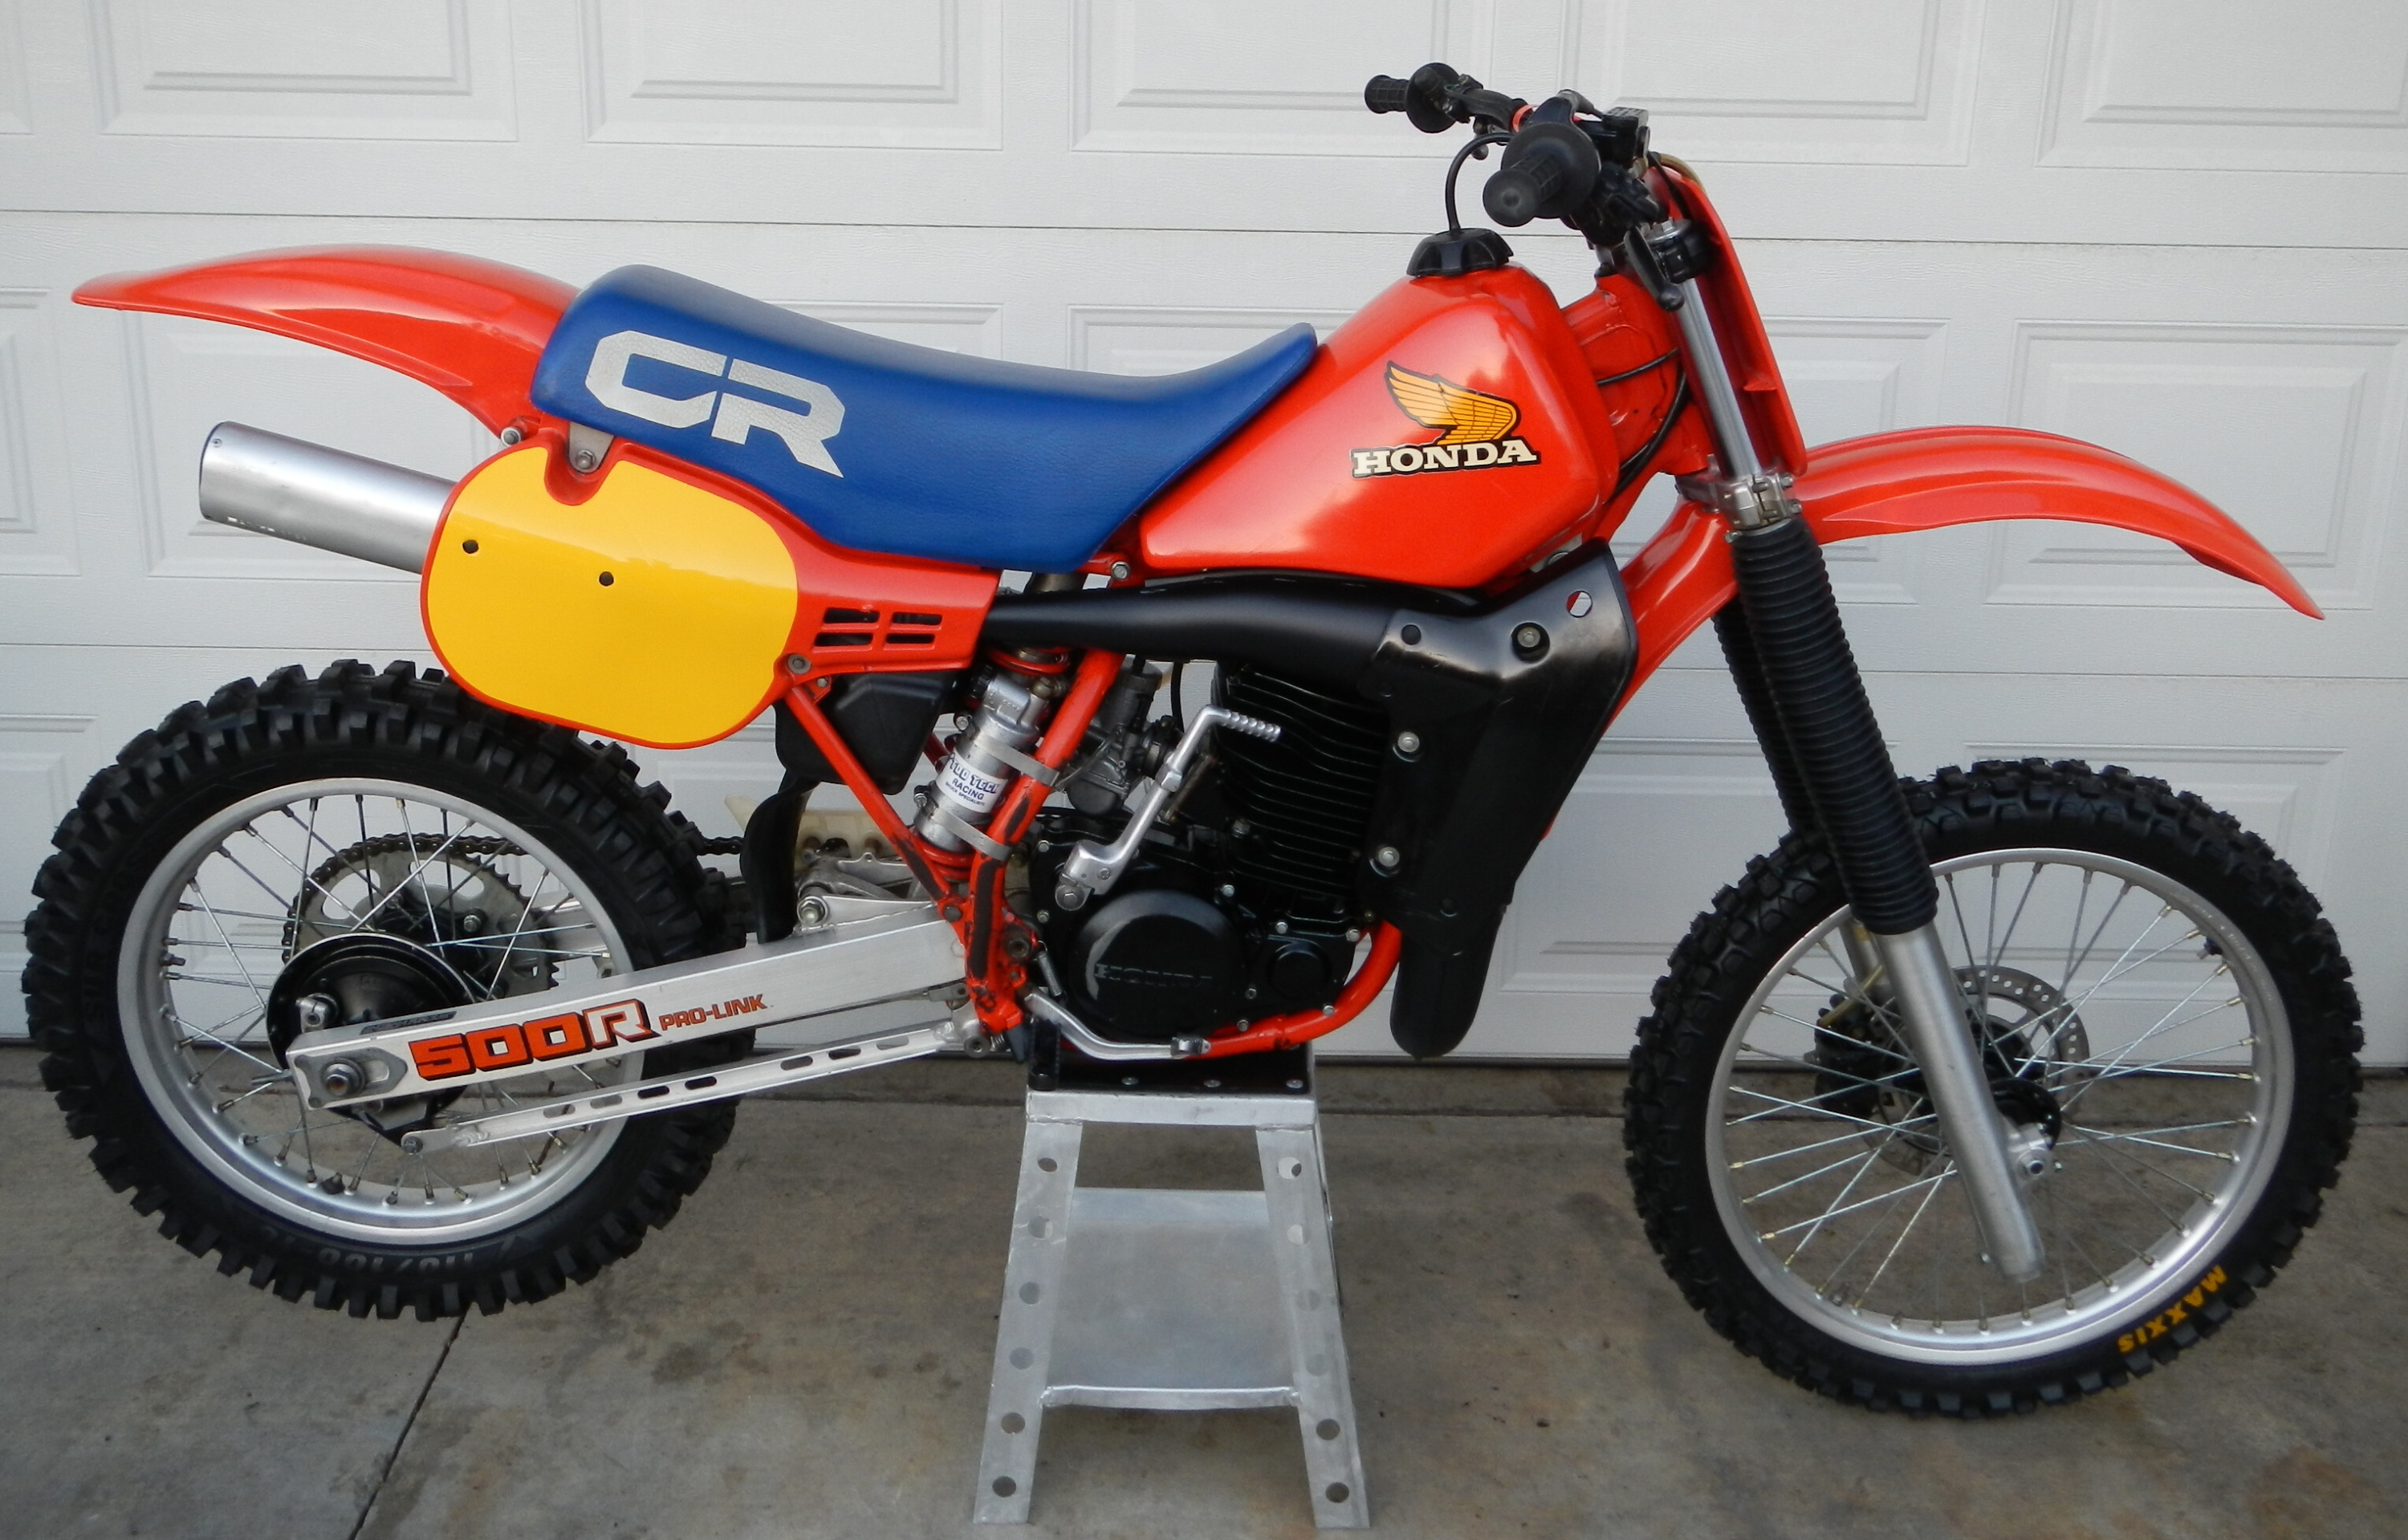 honda cr 500 r 1984. Black Bedroom Furniture Sets. Home Design Ideas